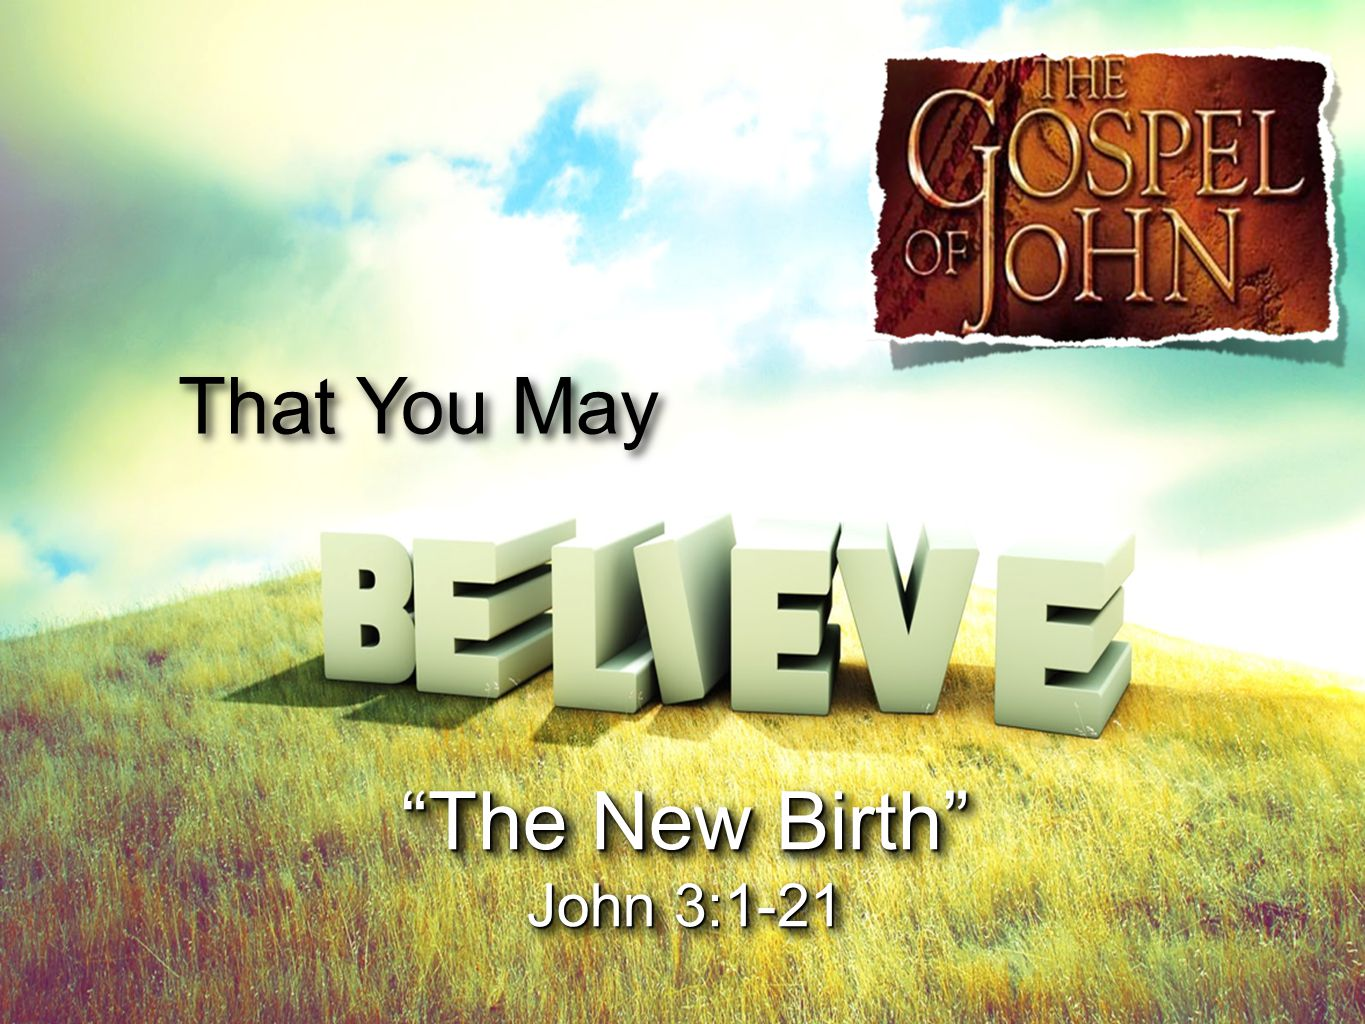 That You May The New Birth John 3:1-21